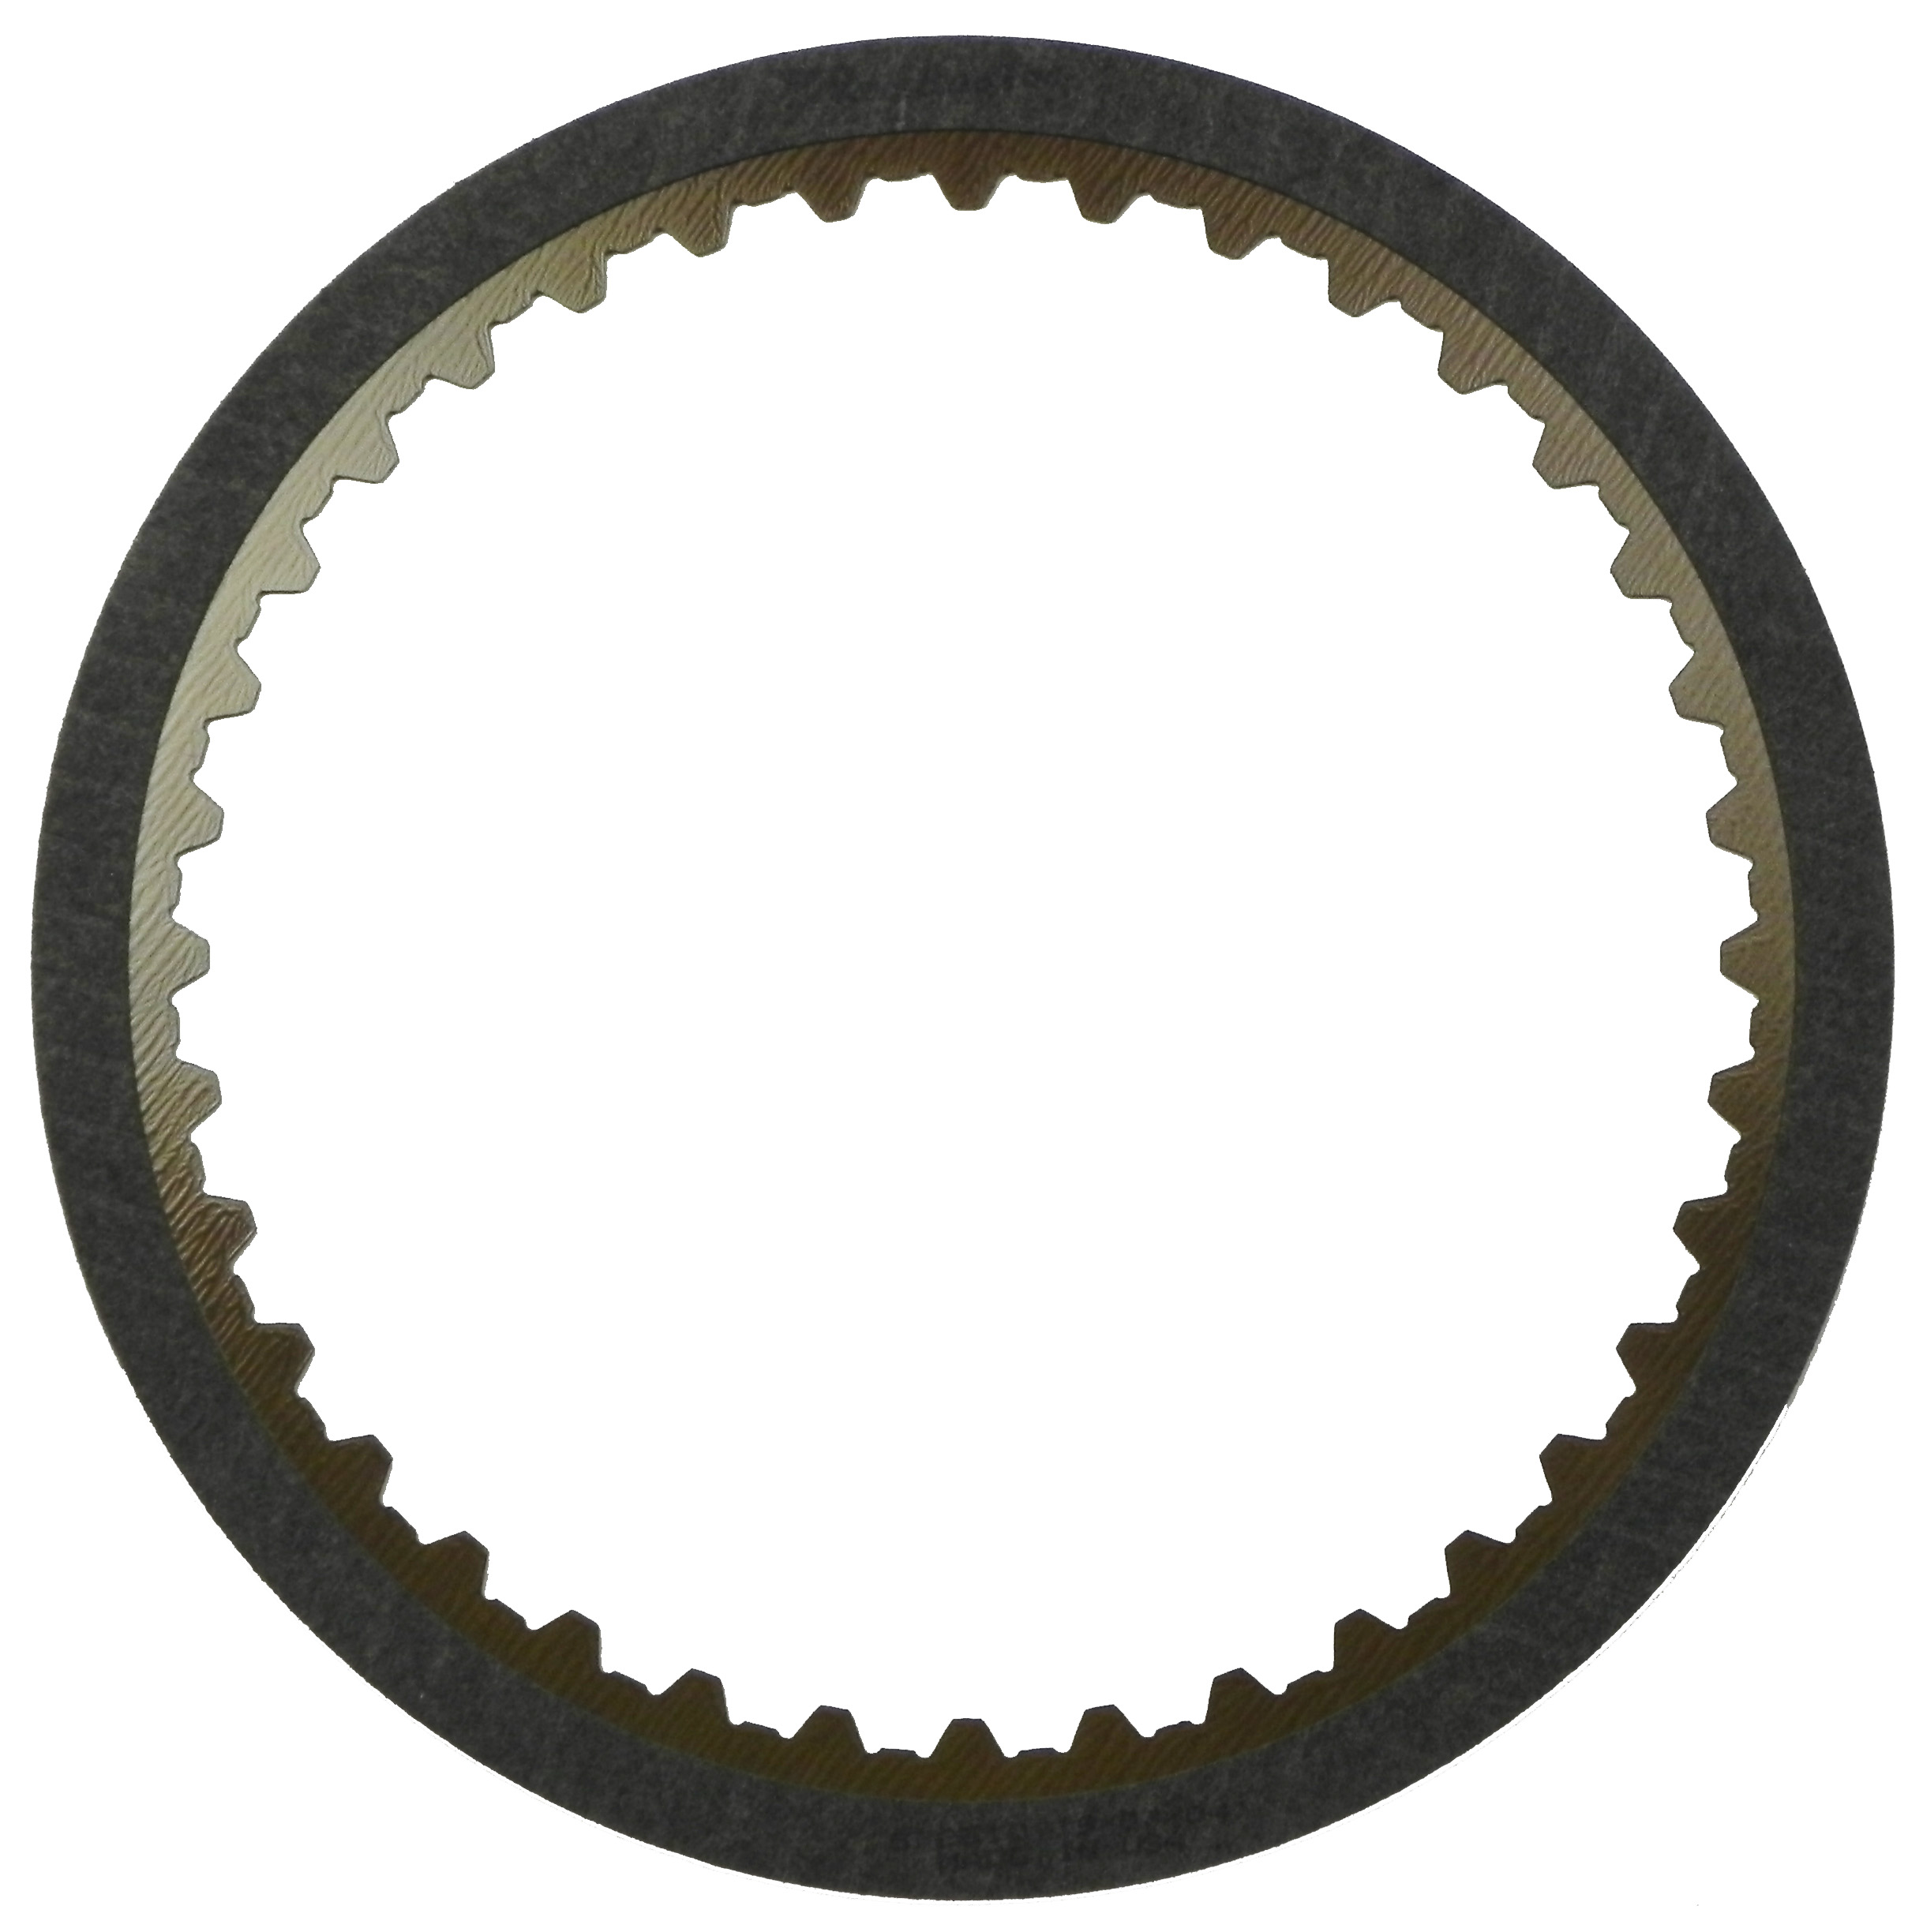 R572610 | 1996-2001 Friction Clutch Plate High Energy K2 Clutch (Small ID) High Energy